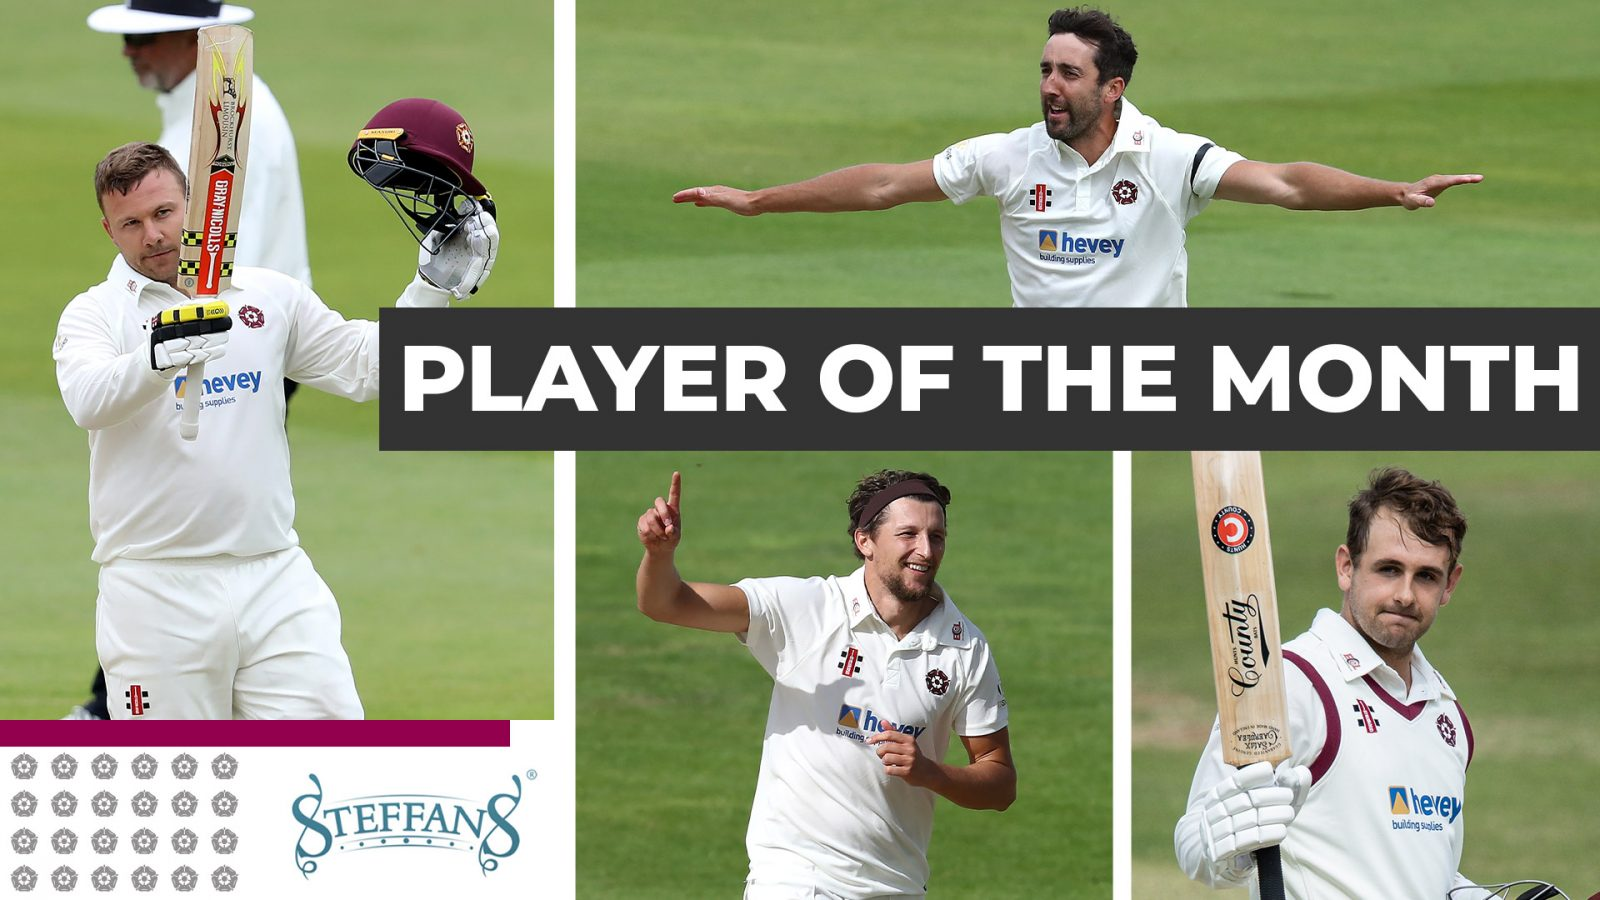 Steffans Jewellers Player Of The Month: August